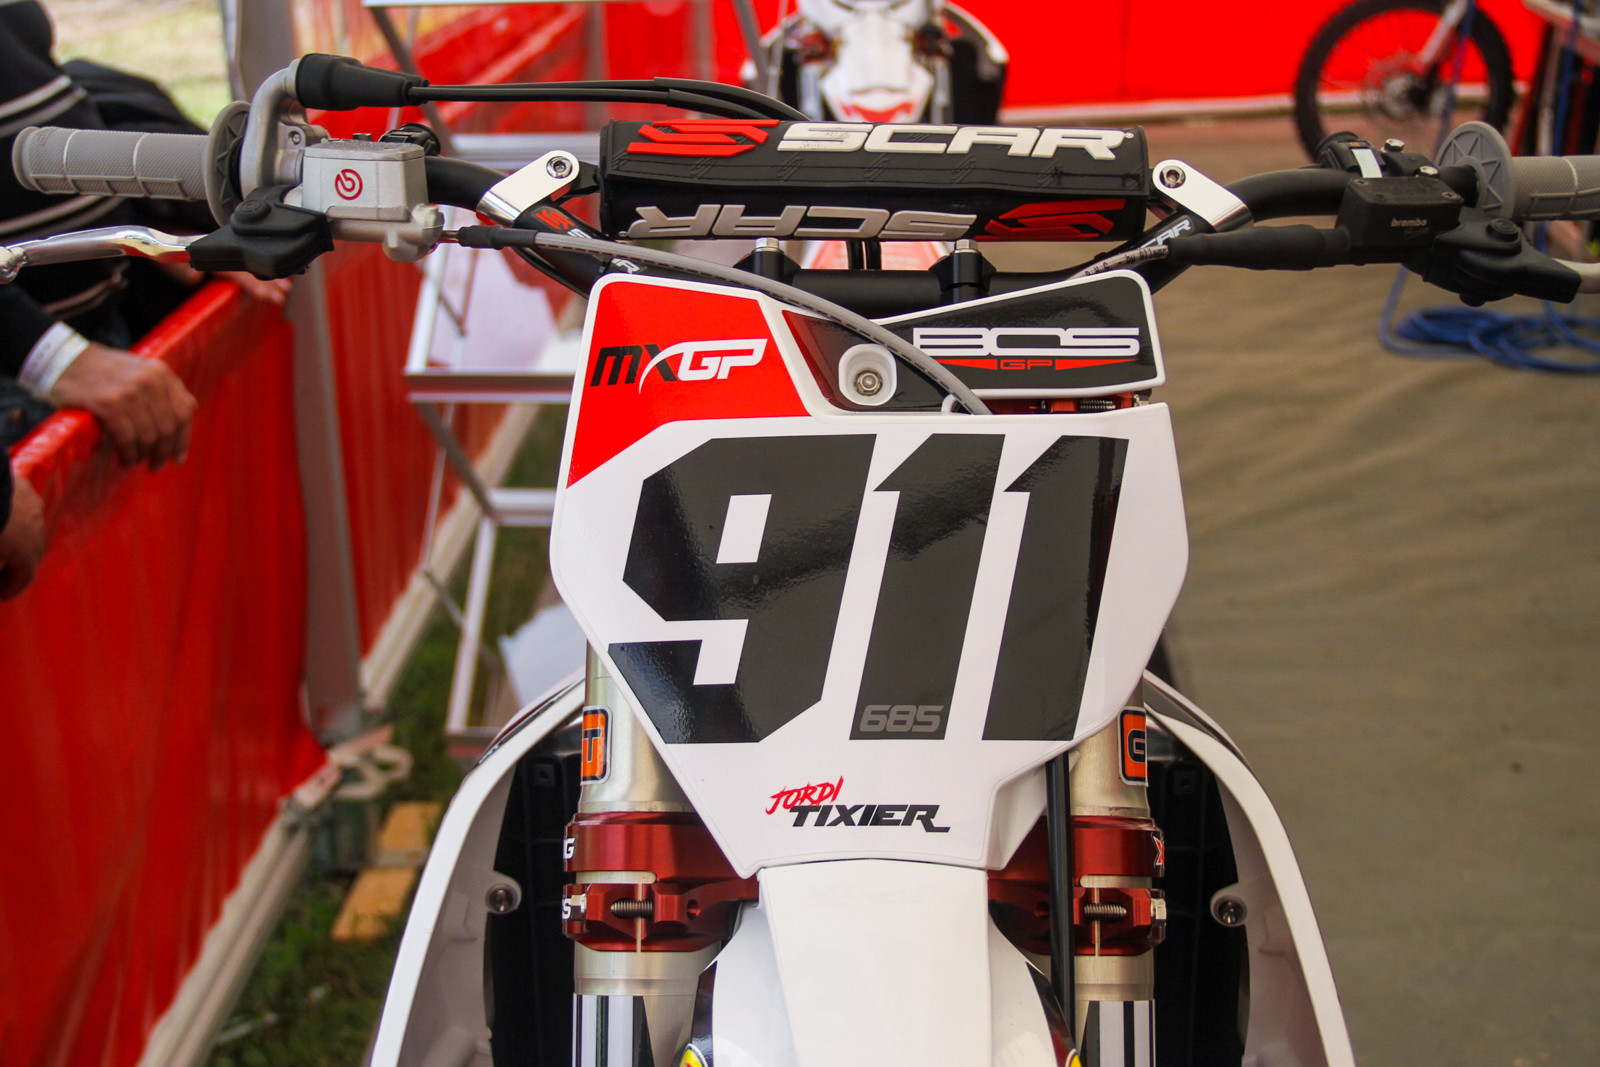 Jordi Tixier's bike is on display, but not on the track quite as of yet.